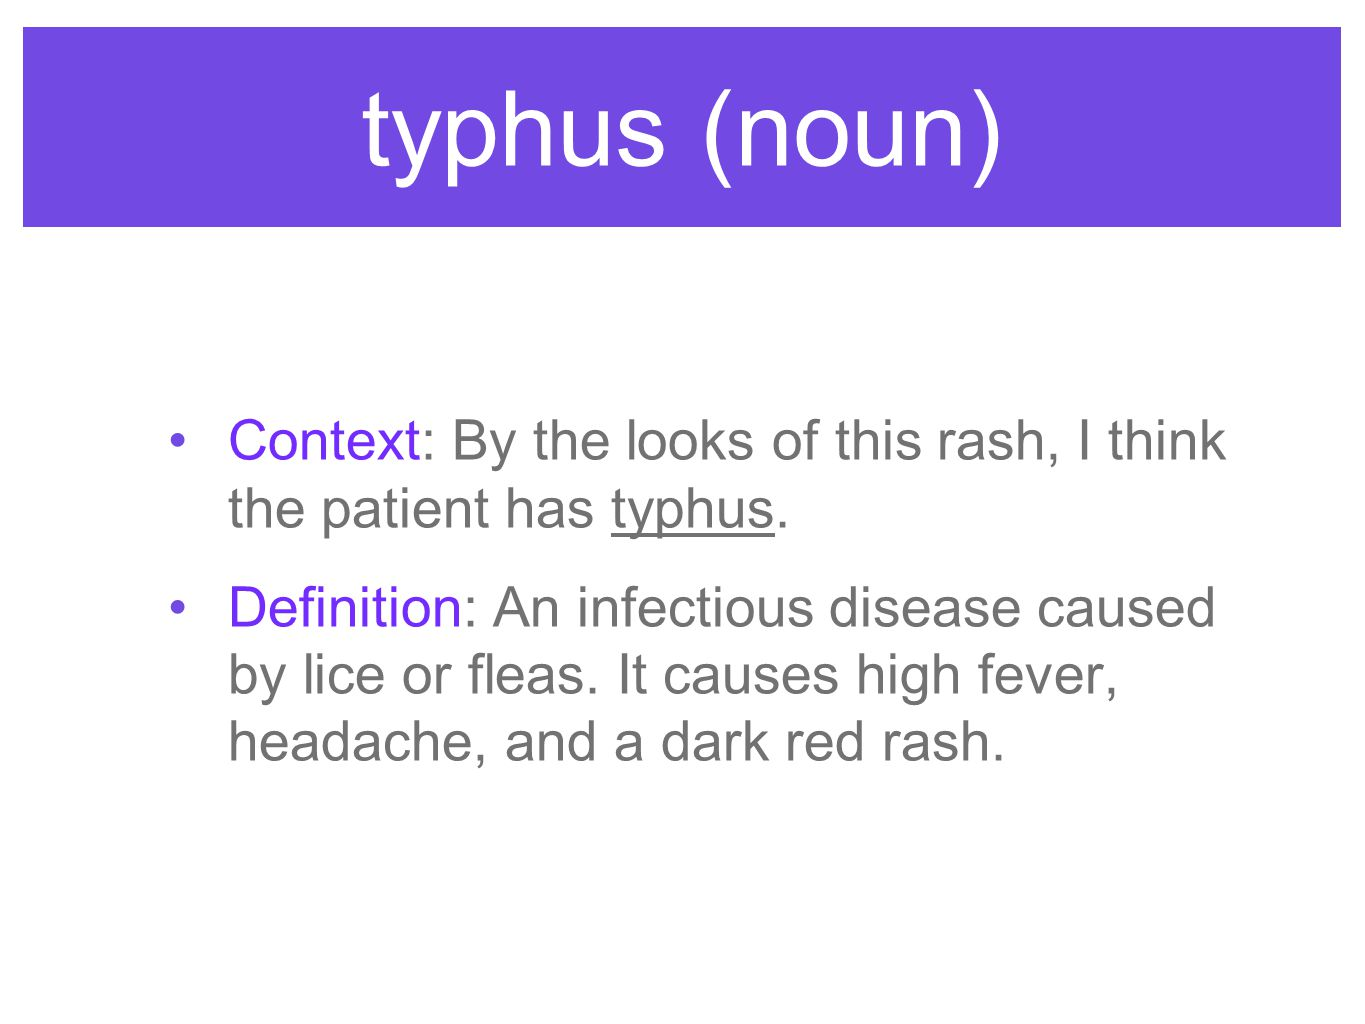 typhus (noun) Context: By the looks of this rash, I think the patient has typhus. Definition: An infectious disease caused by lice or fleas. It causes